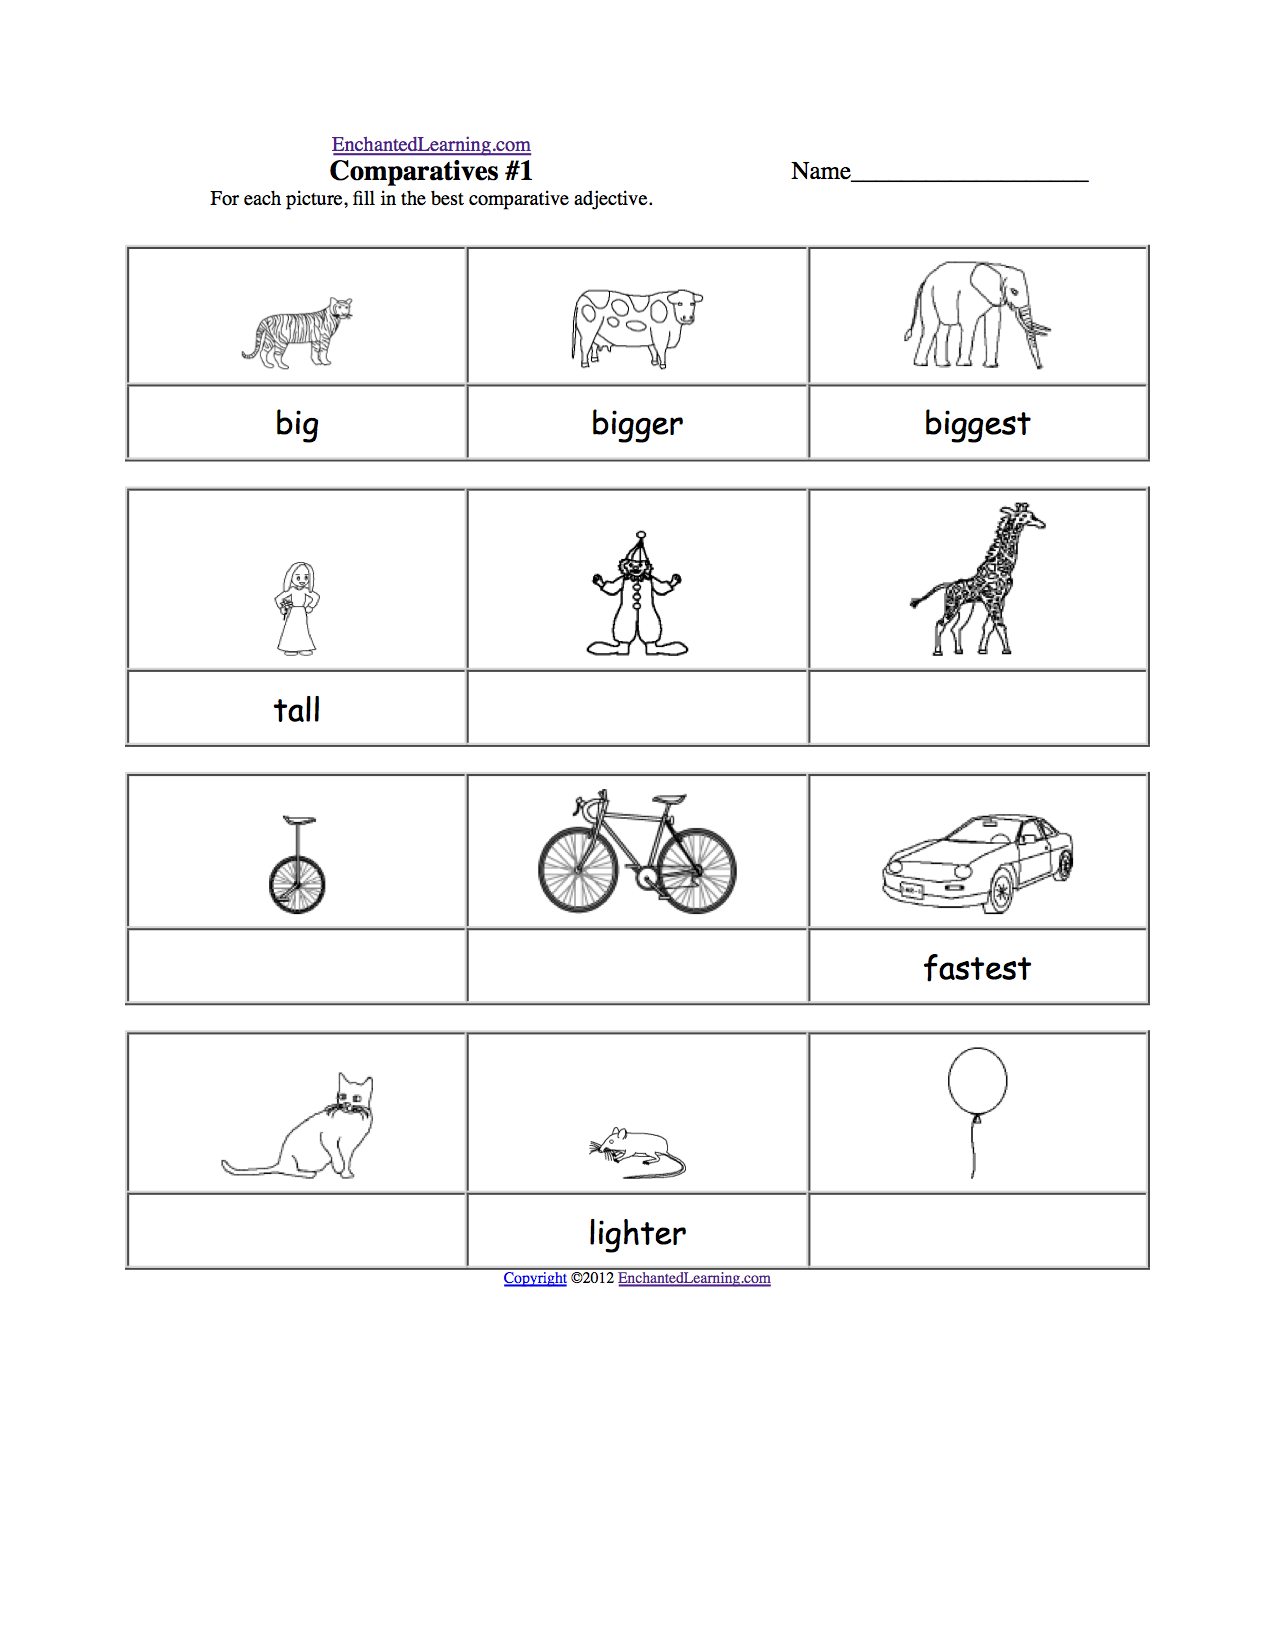 Proatmealus  Terrific Adjective Activities And Worksheets Enchantedlearningcom With Lovely Role Model Worksheets Besides Brown Bear Worksheets Furthermore Analyze A Poem Worksheet With Cute Sentence Structure Worksheets Nd Grade Also Geometry Translation Worksheets In Addition Percent Equation Worksheets And Spelling Words Worksheet Generator As Well As Excel Workbook Worksheet Additionally Ratio Problem Worksheet From Enchantedlearningcom With Proatmealus  Lovely Adjective Activities And Worksheets Enchantedlearningcom With Cute Role Model Worksheets Besides Brown Bear Worksheets Furthermore Analyze A Poem Worksheet And Terrific Sentence Structure Worksheets Nd Grade Also Geometry Translation Worksheets In Addition Percent Equation Worksheets From Enchantedlearningcom